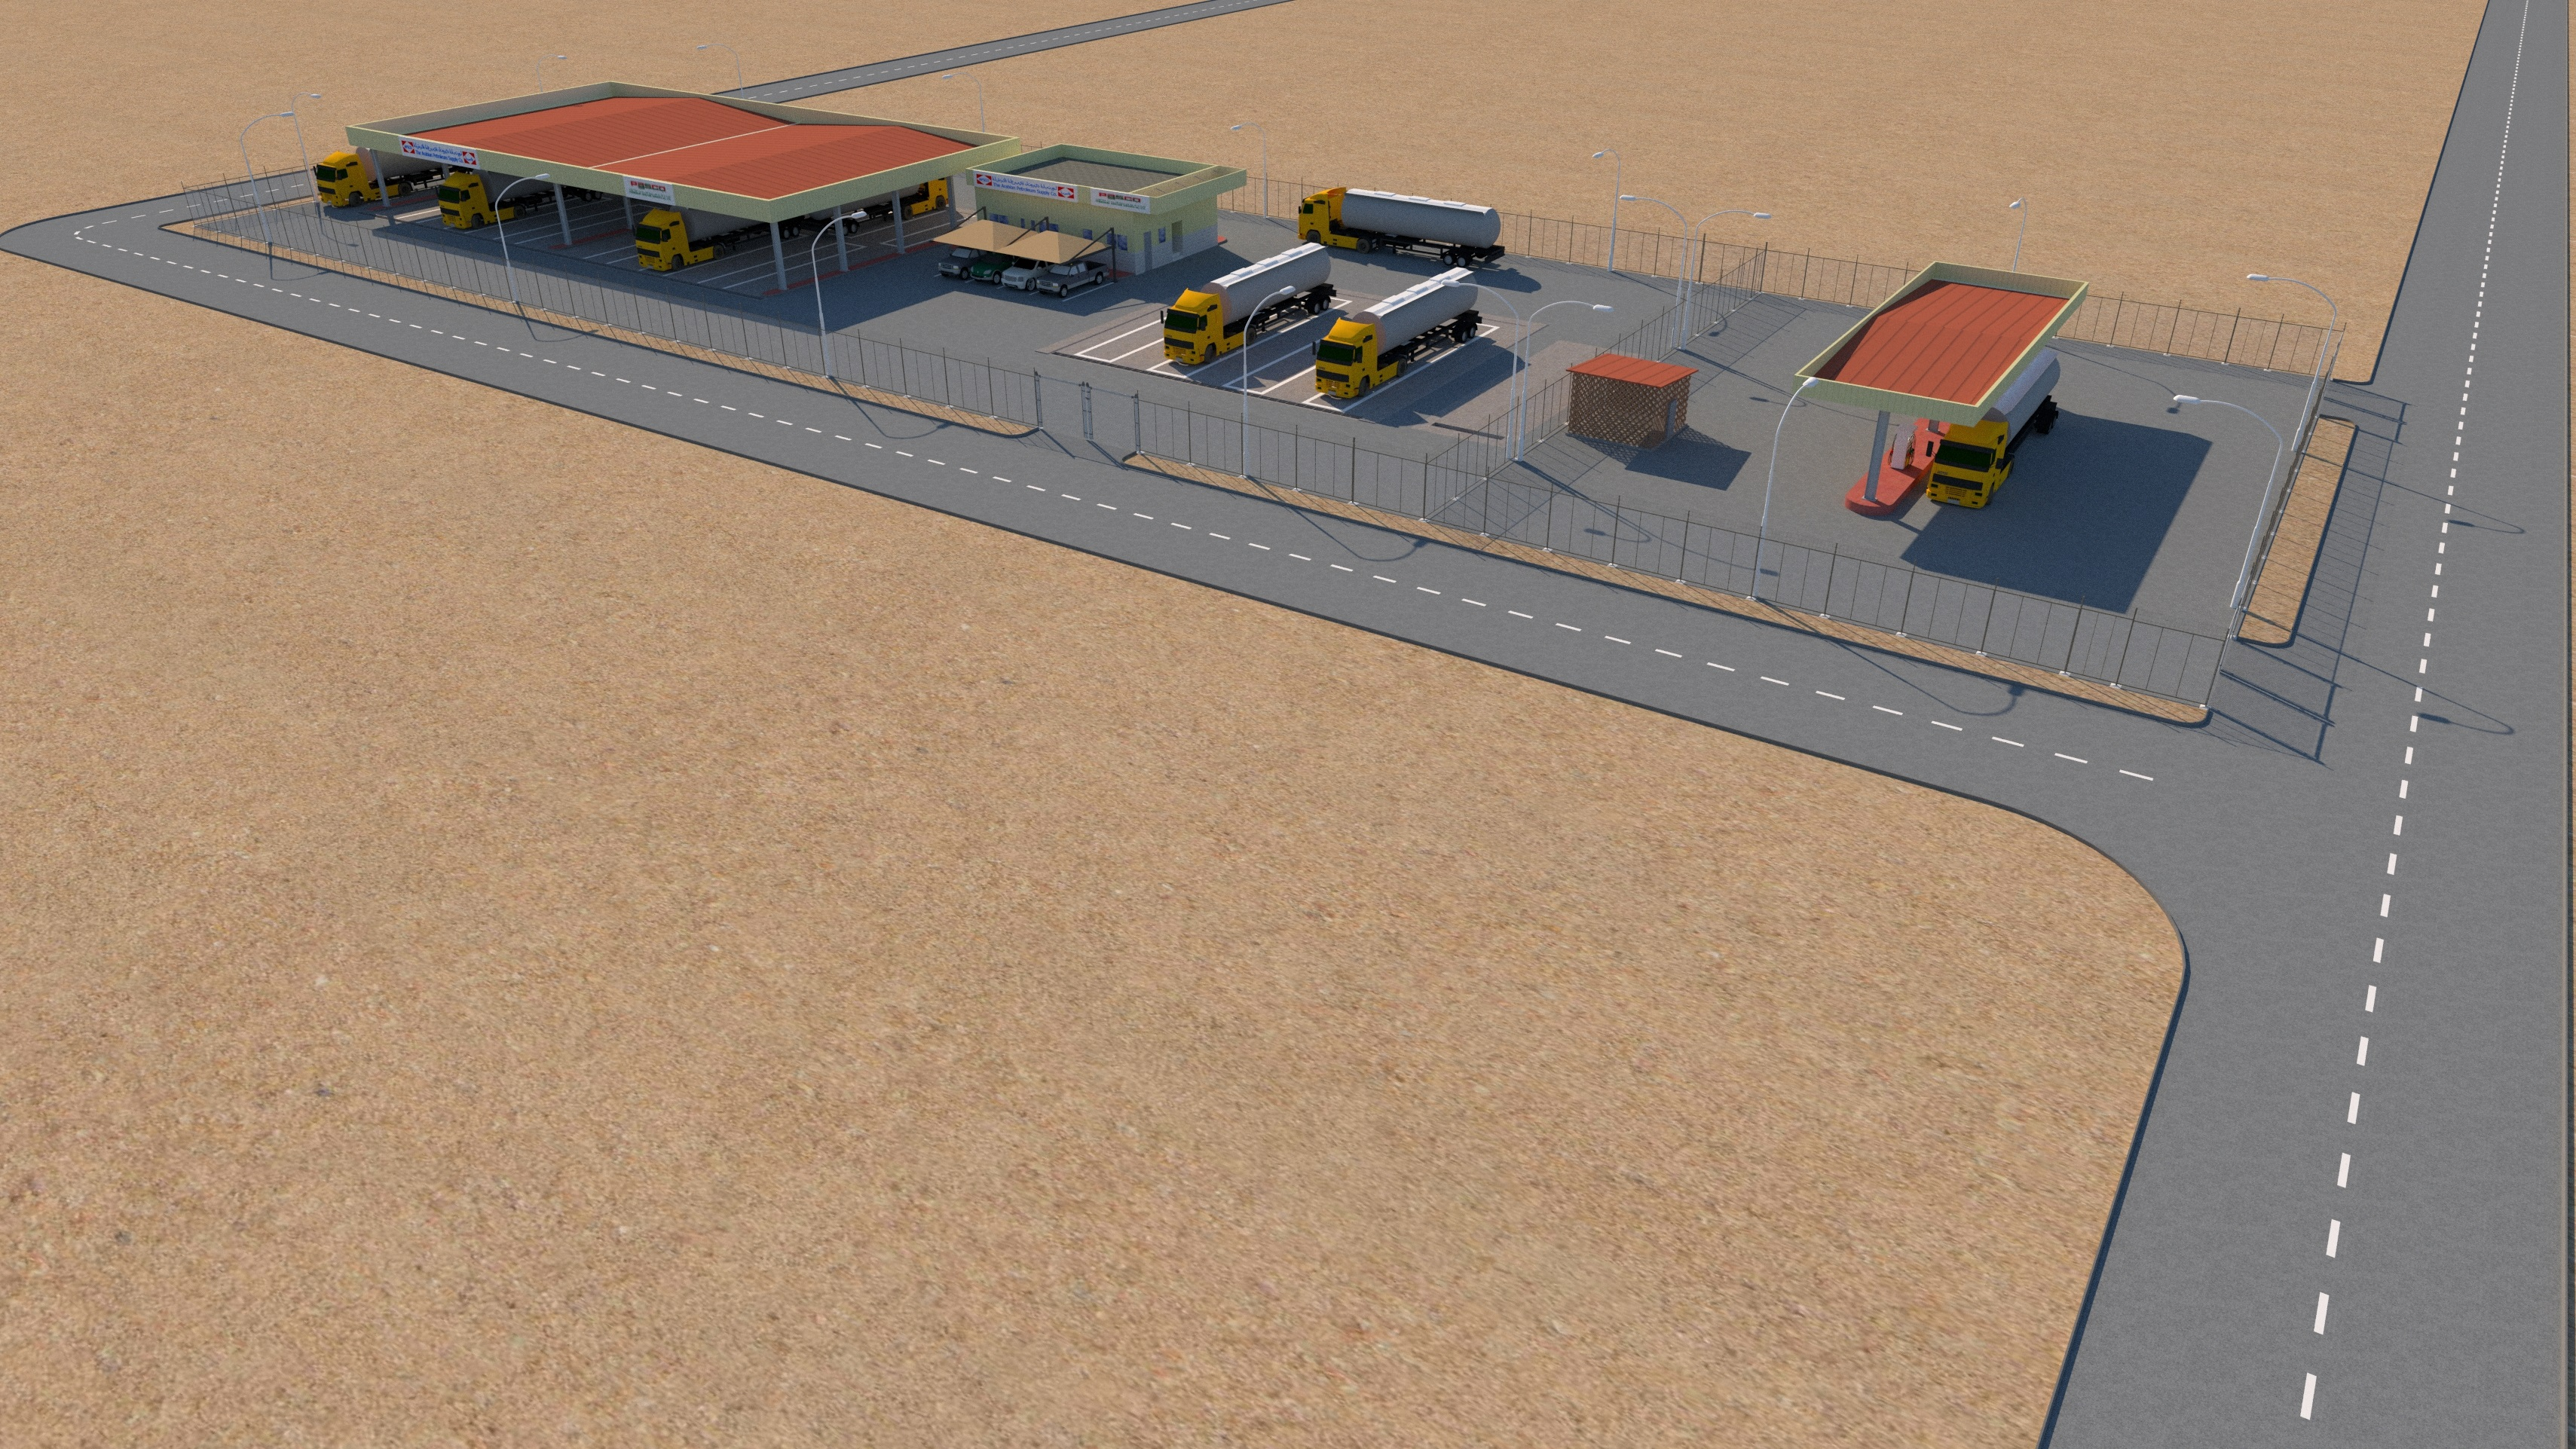 Turnkey CONSTRUCTION PROJECT FOR OPERATION & MAINTENANCE FACILITY JET FUEL REFUELLERS AT MADINAH AIRPORT.